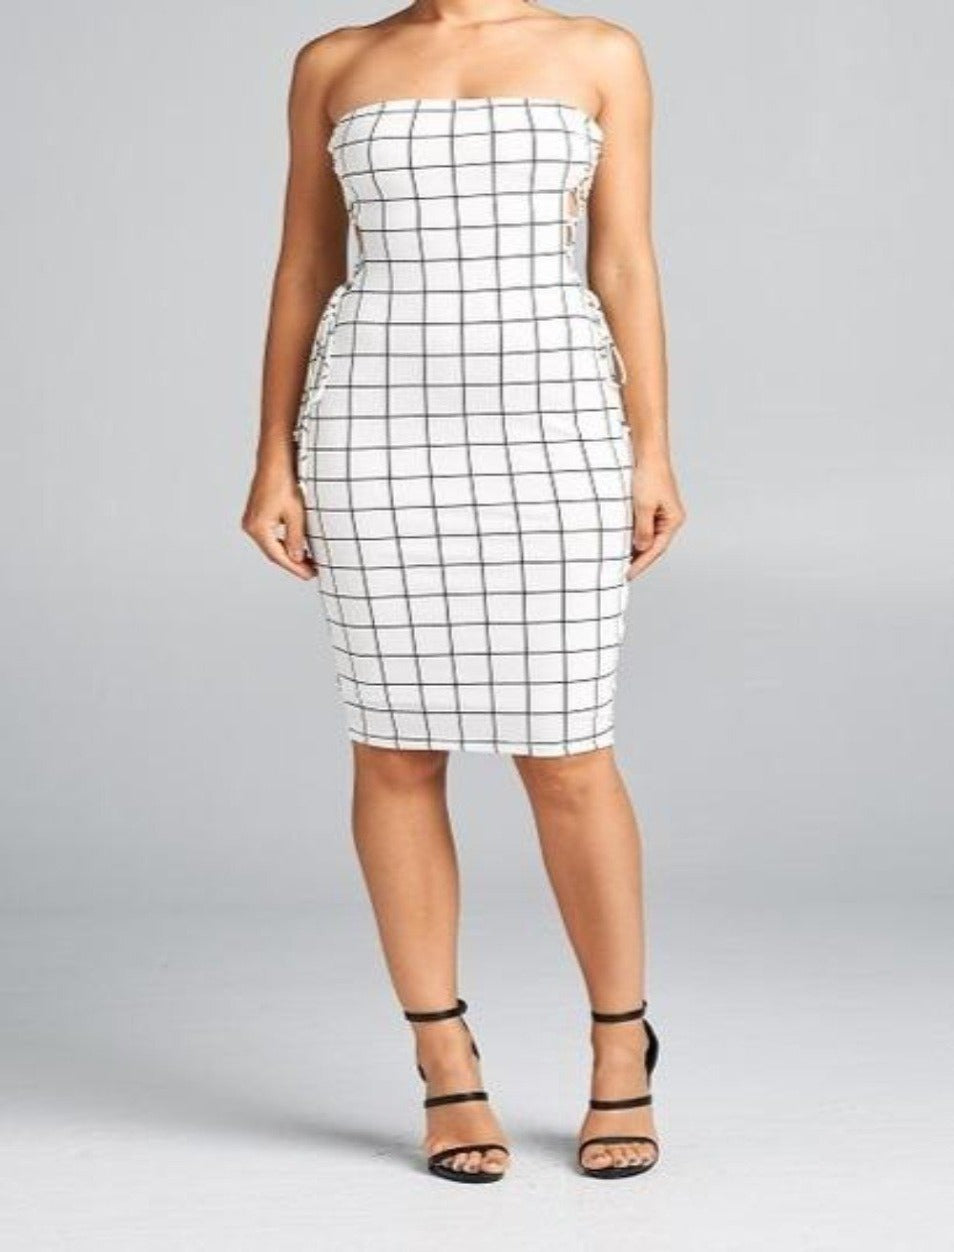 Capri bodycon white dress with checkered pattern and lace-up detailing - Sahvant